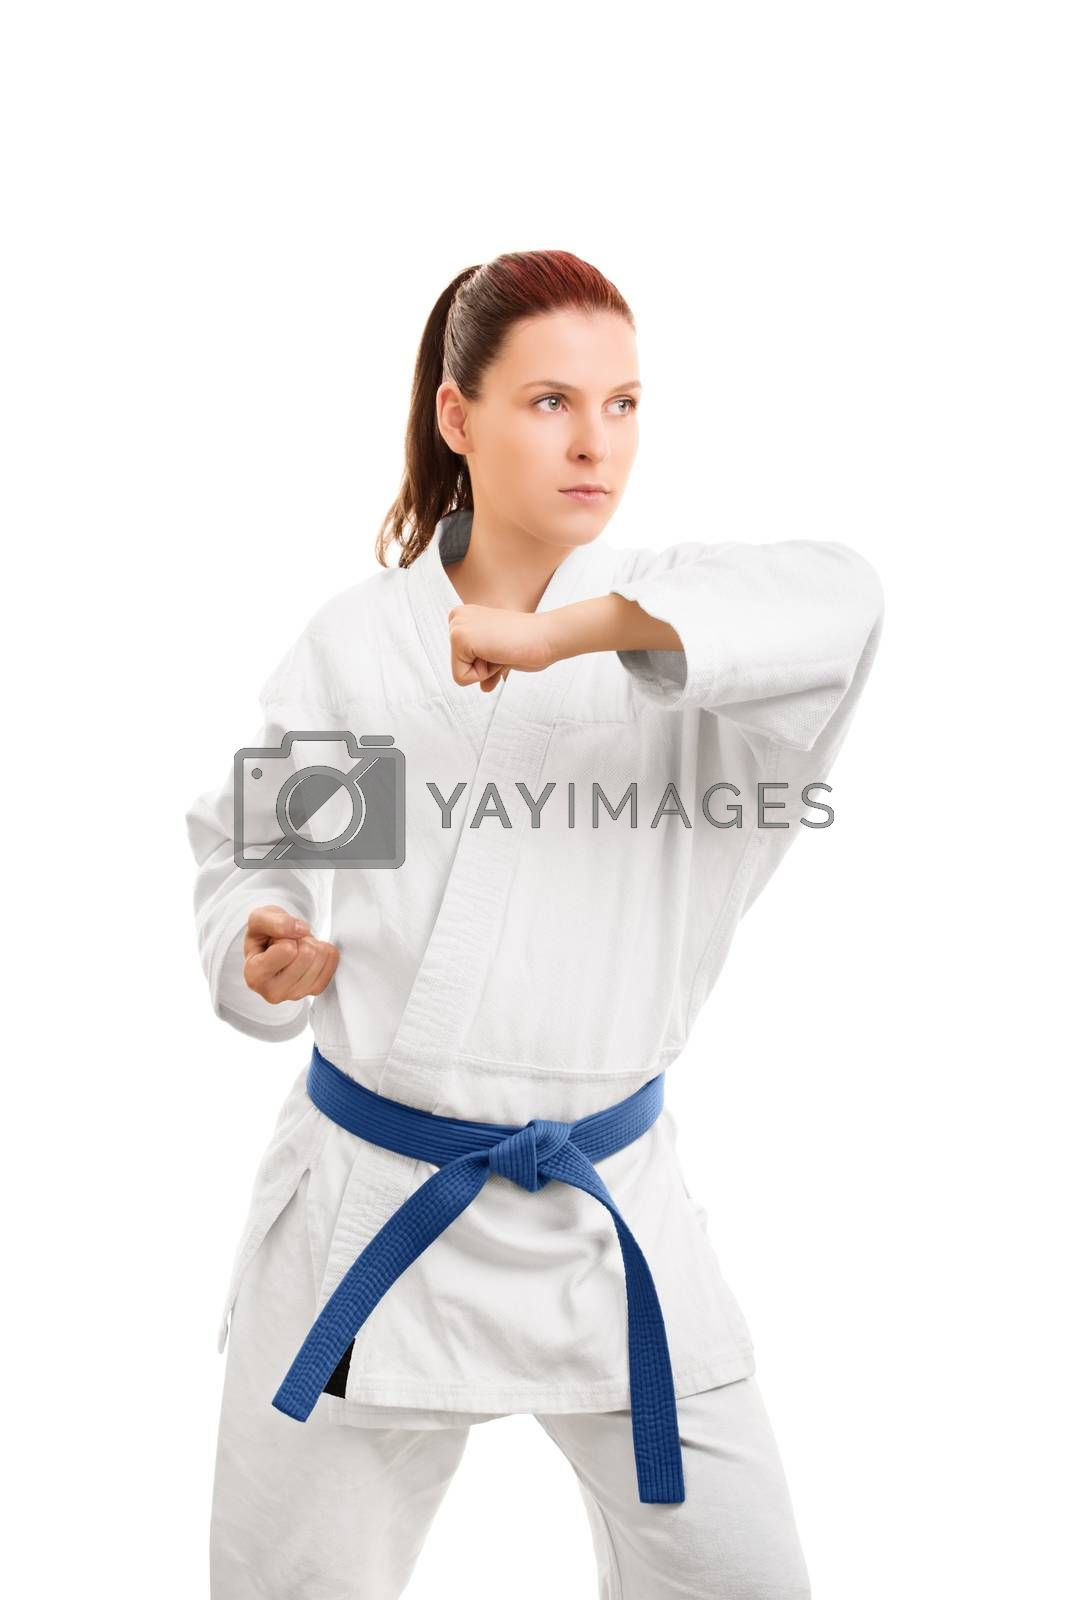 A portrait of a young girl in a kimono with blue belt demonstrating a blocking technique, isolated on white background.